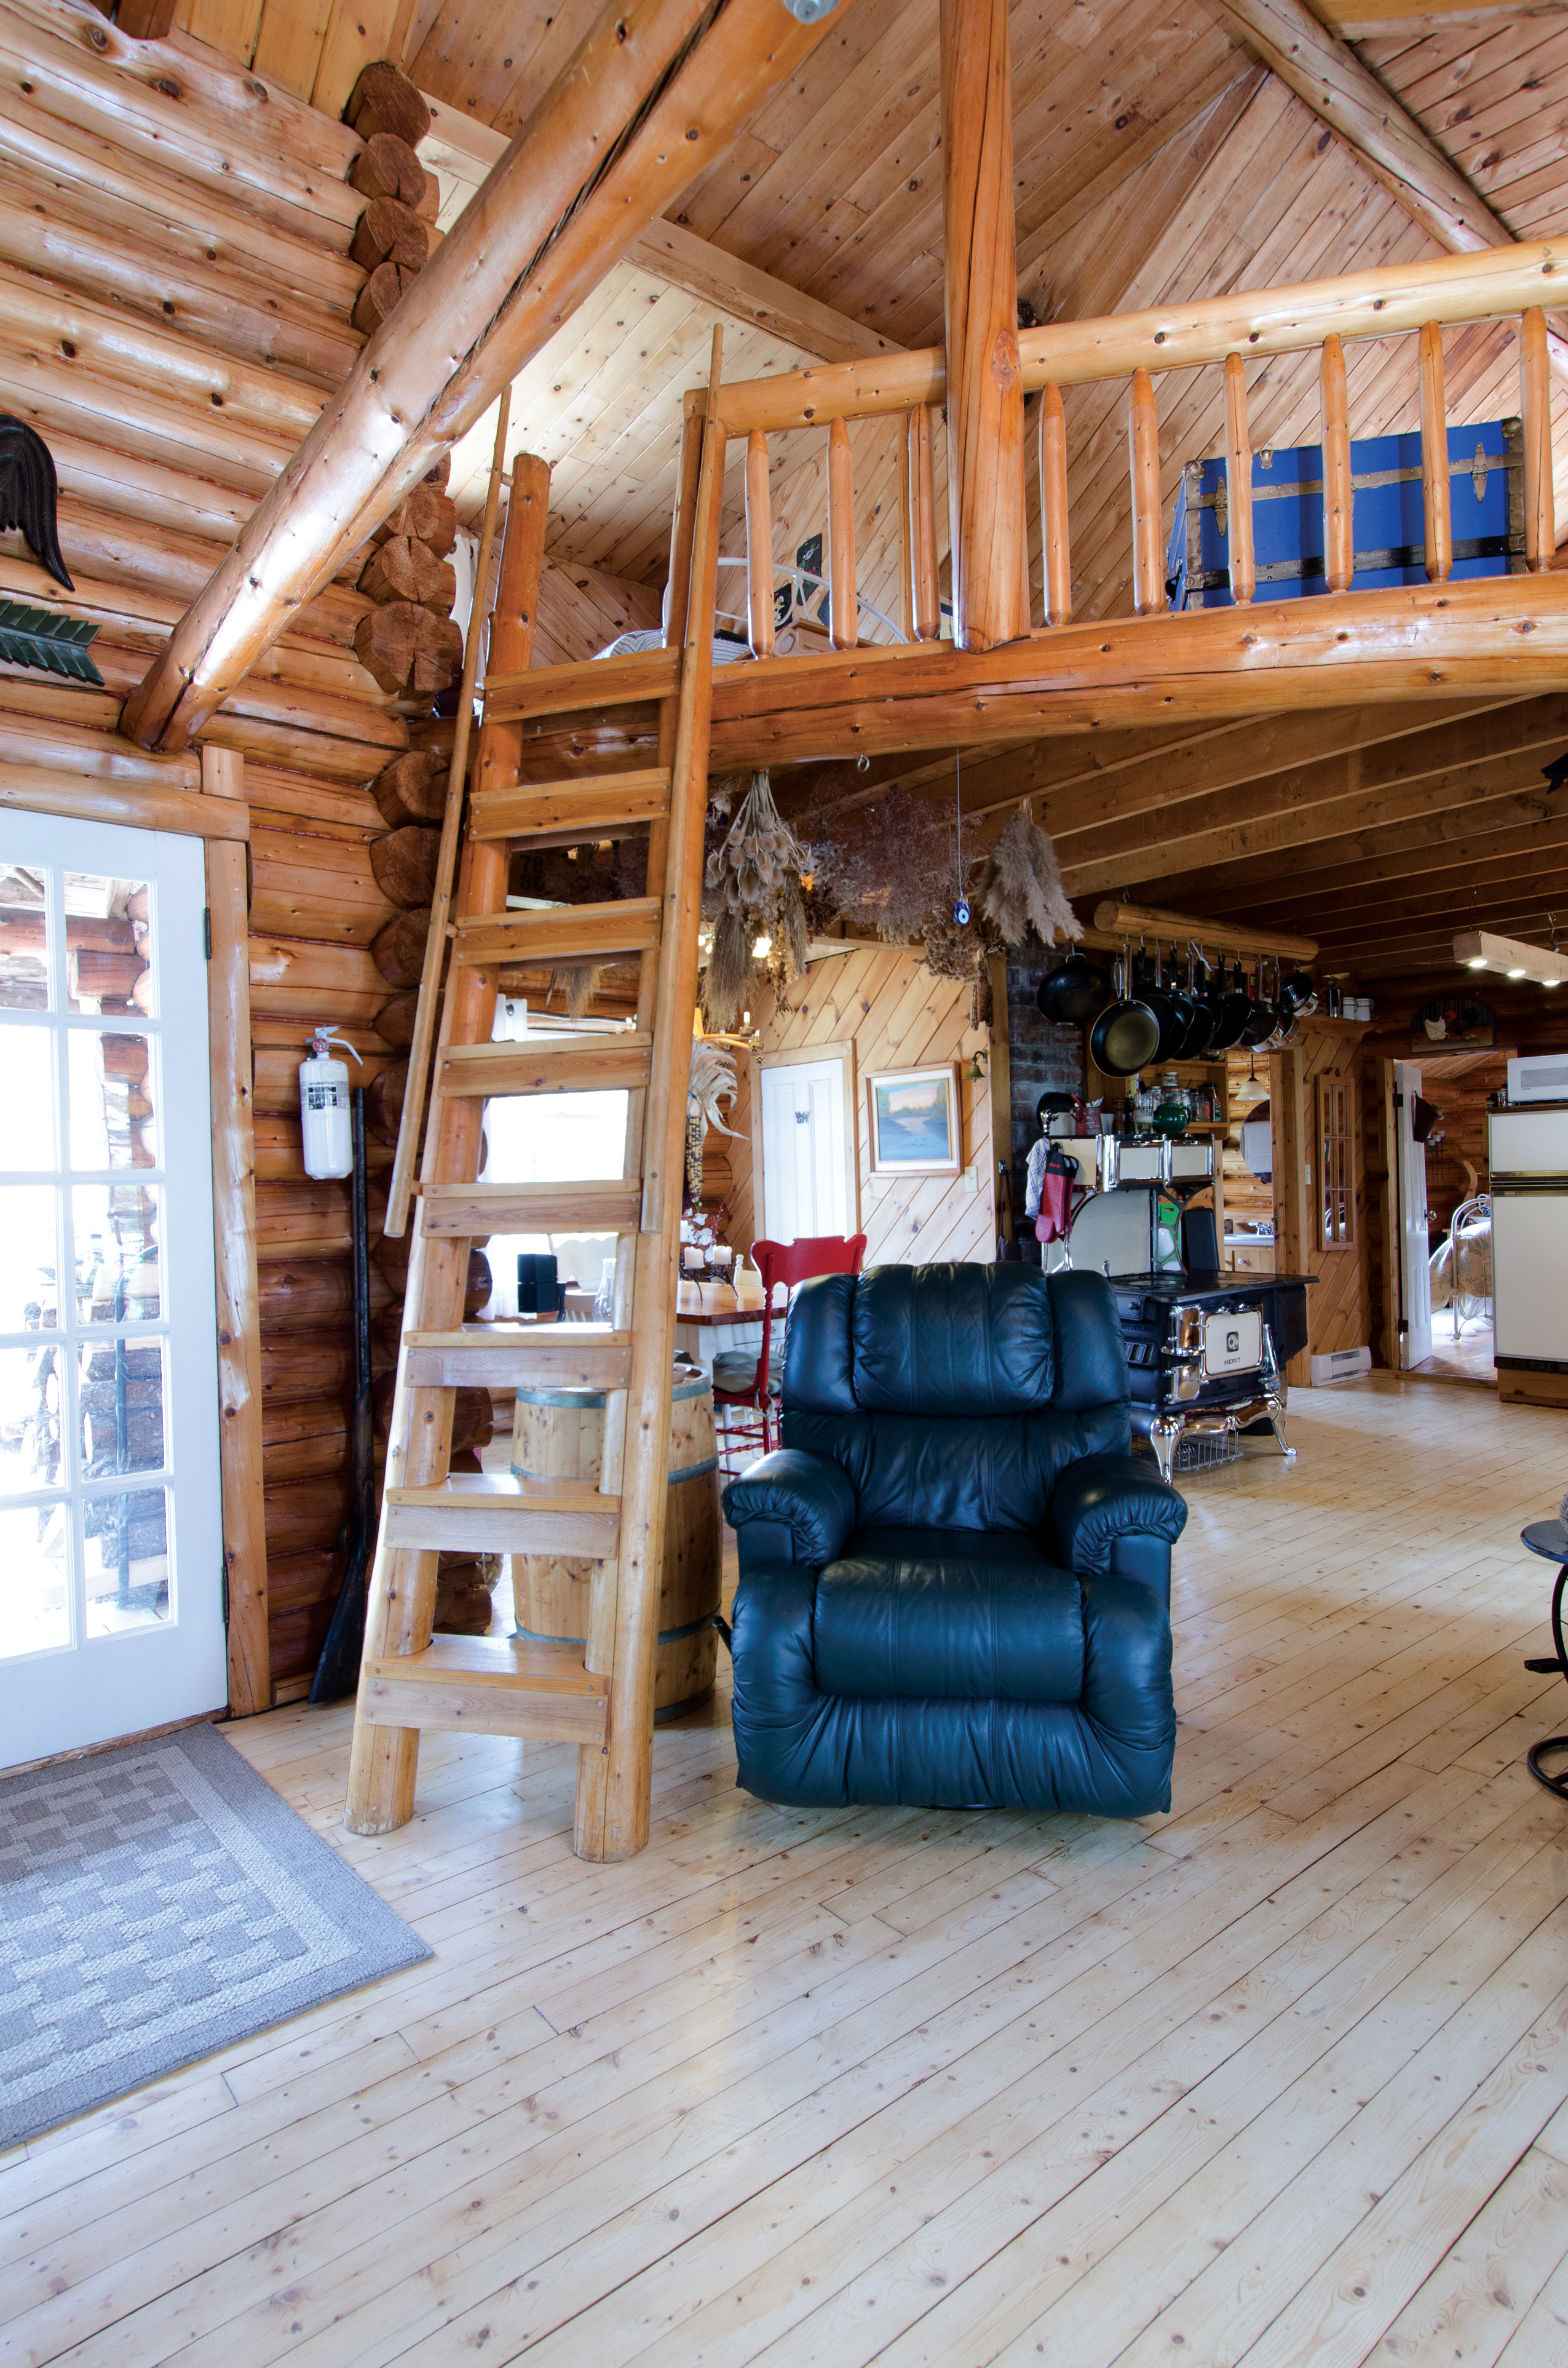 Cabin Tour: A Rustic, Off-Grid Log Cabin In The Woods